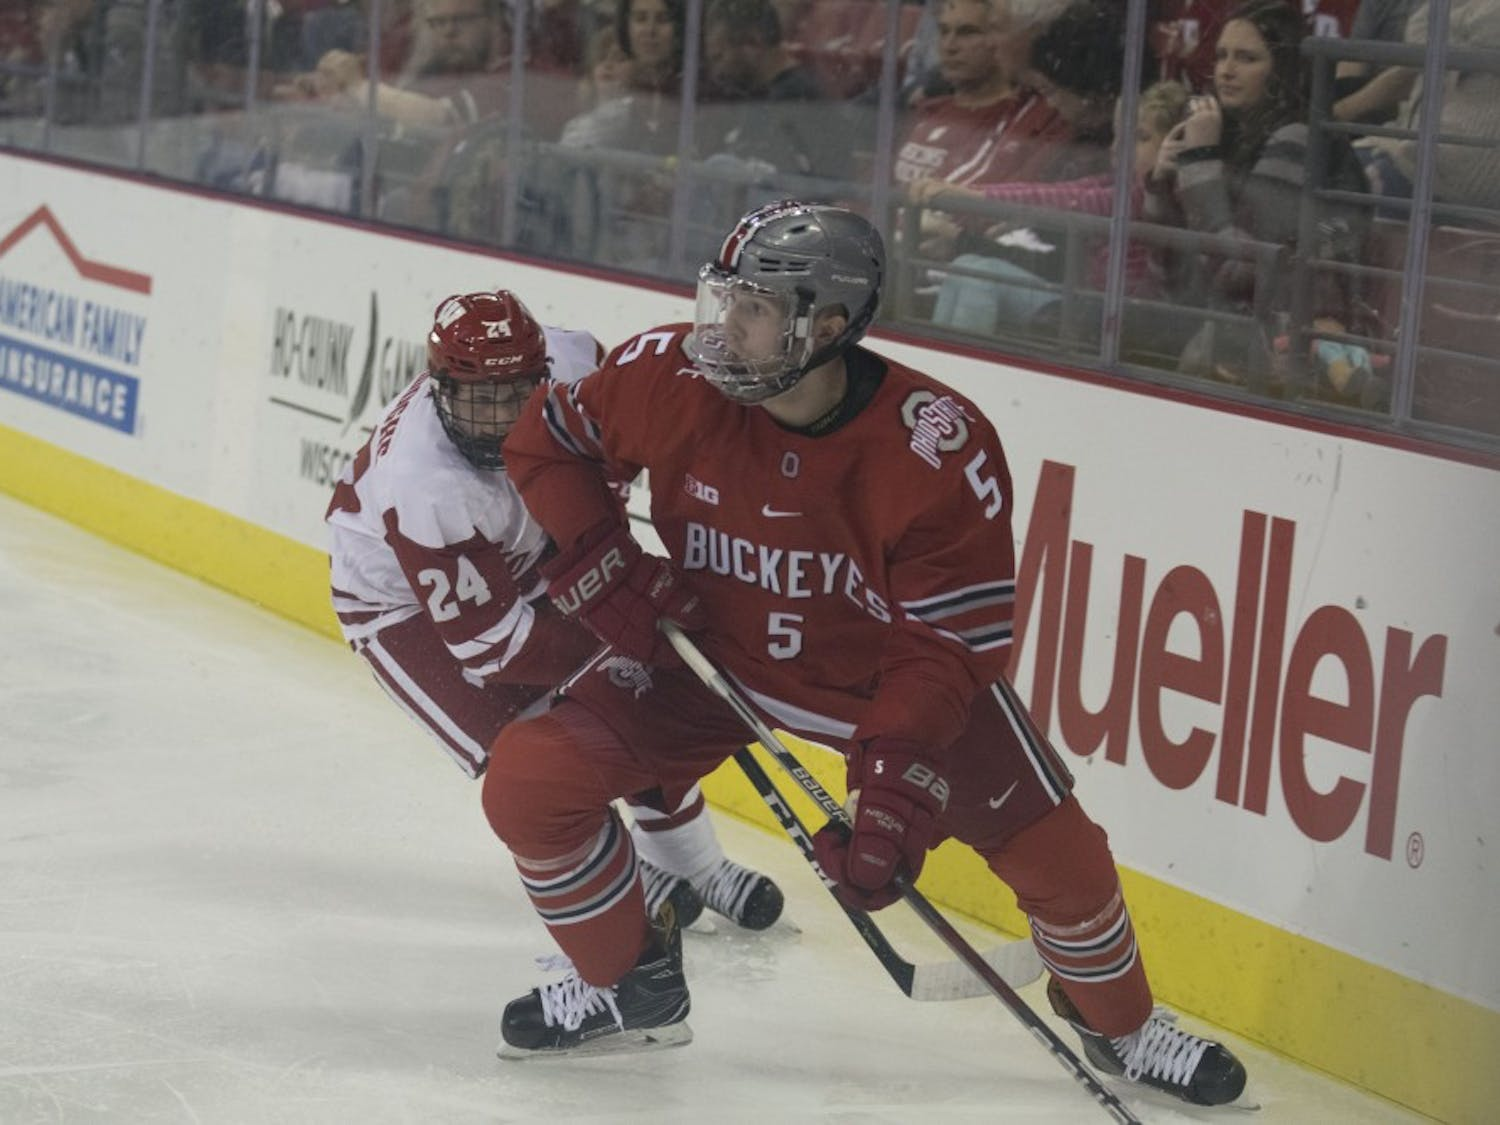 Sophomore forward Sean Dhooghe has scored five goals this year to lead a scoring explosion by Wisconsin's underclassmen.